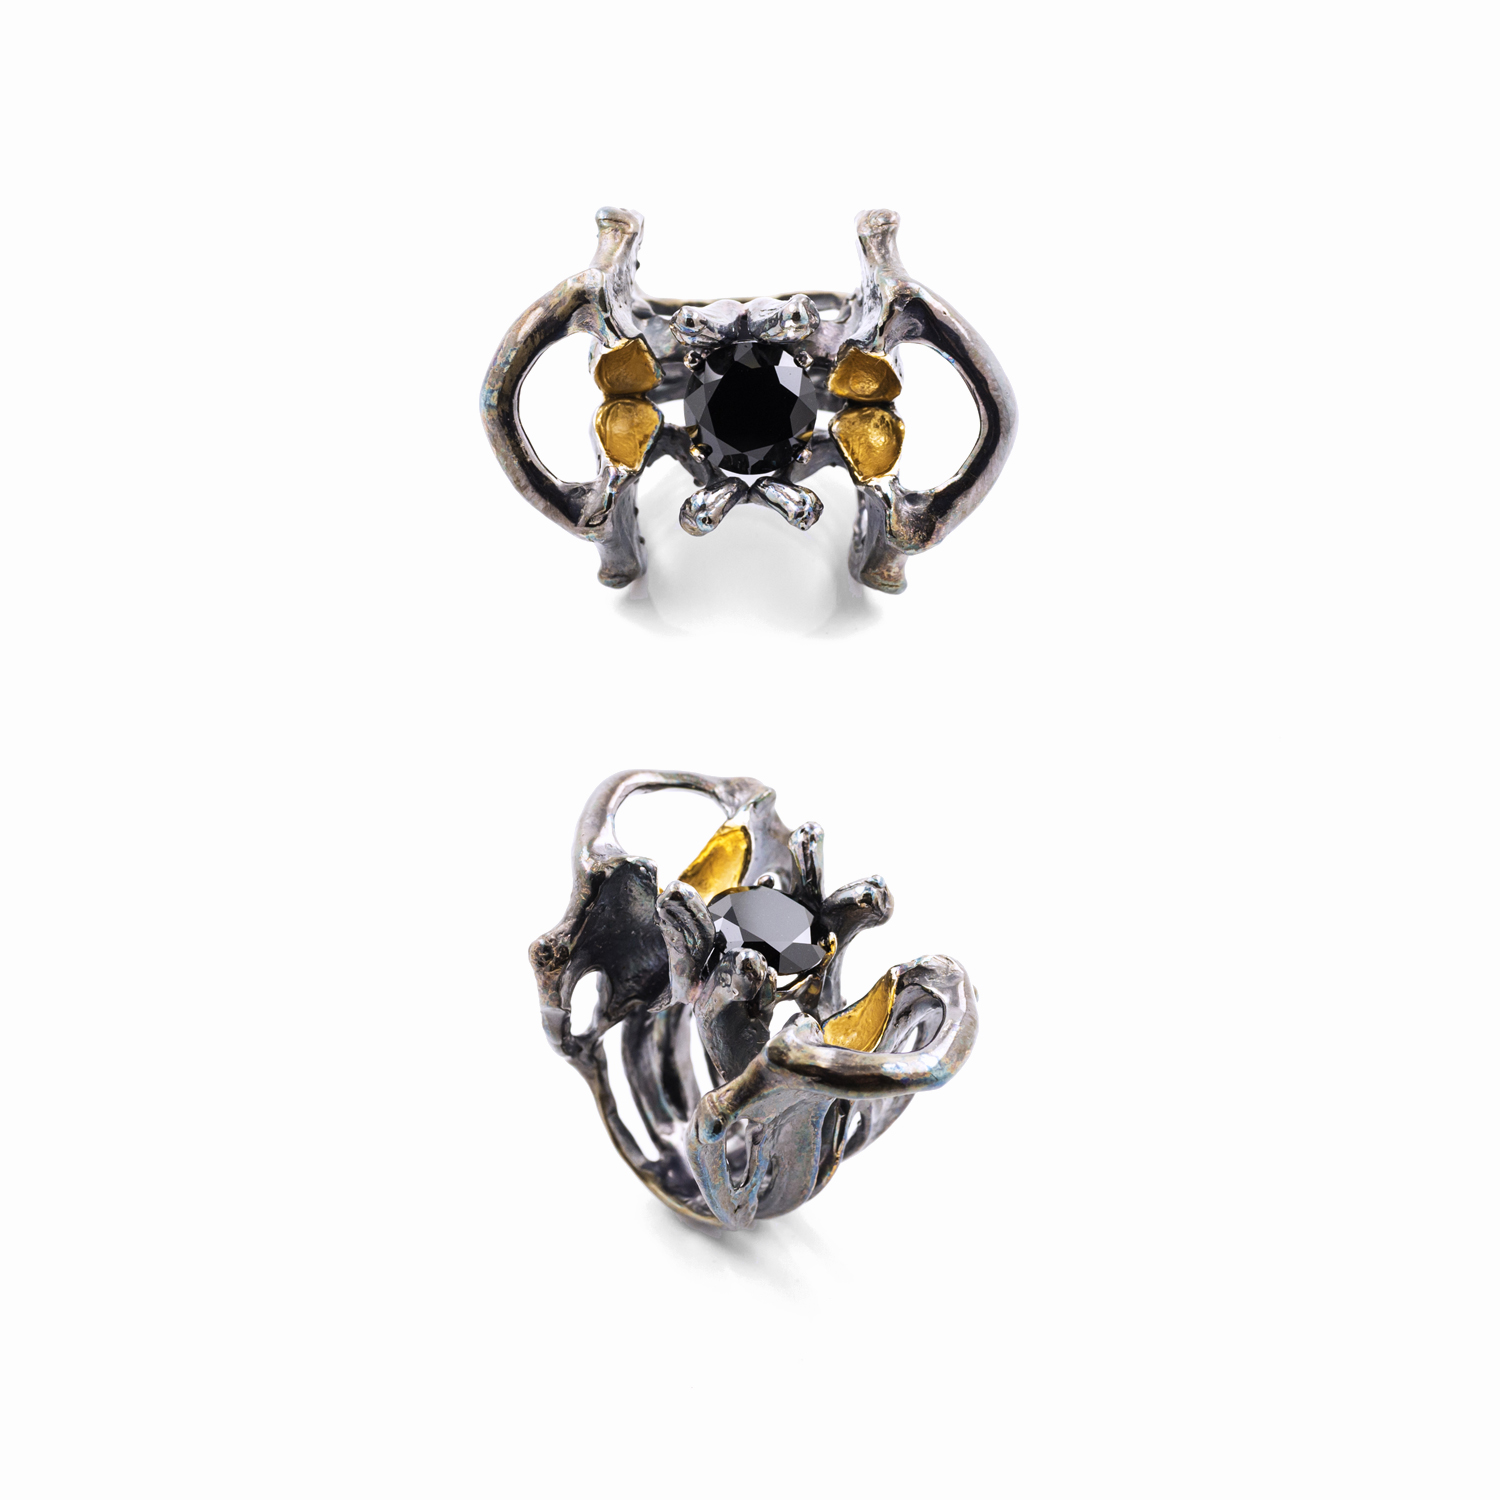 Large unfolding ring // Sterling silver, spinel, gold vermeil, patina